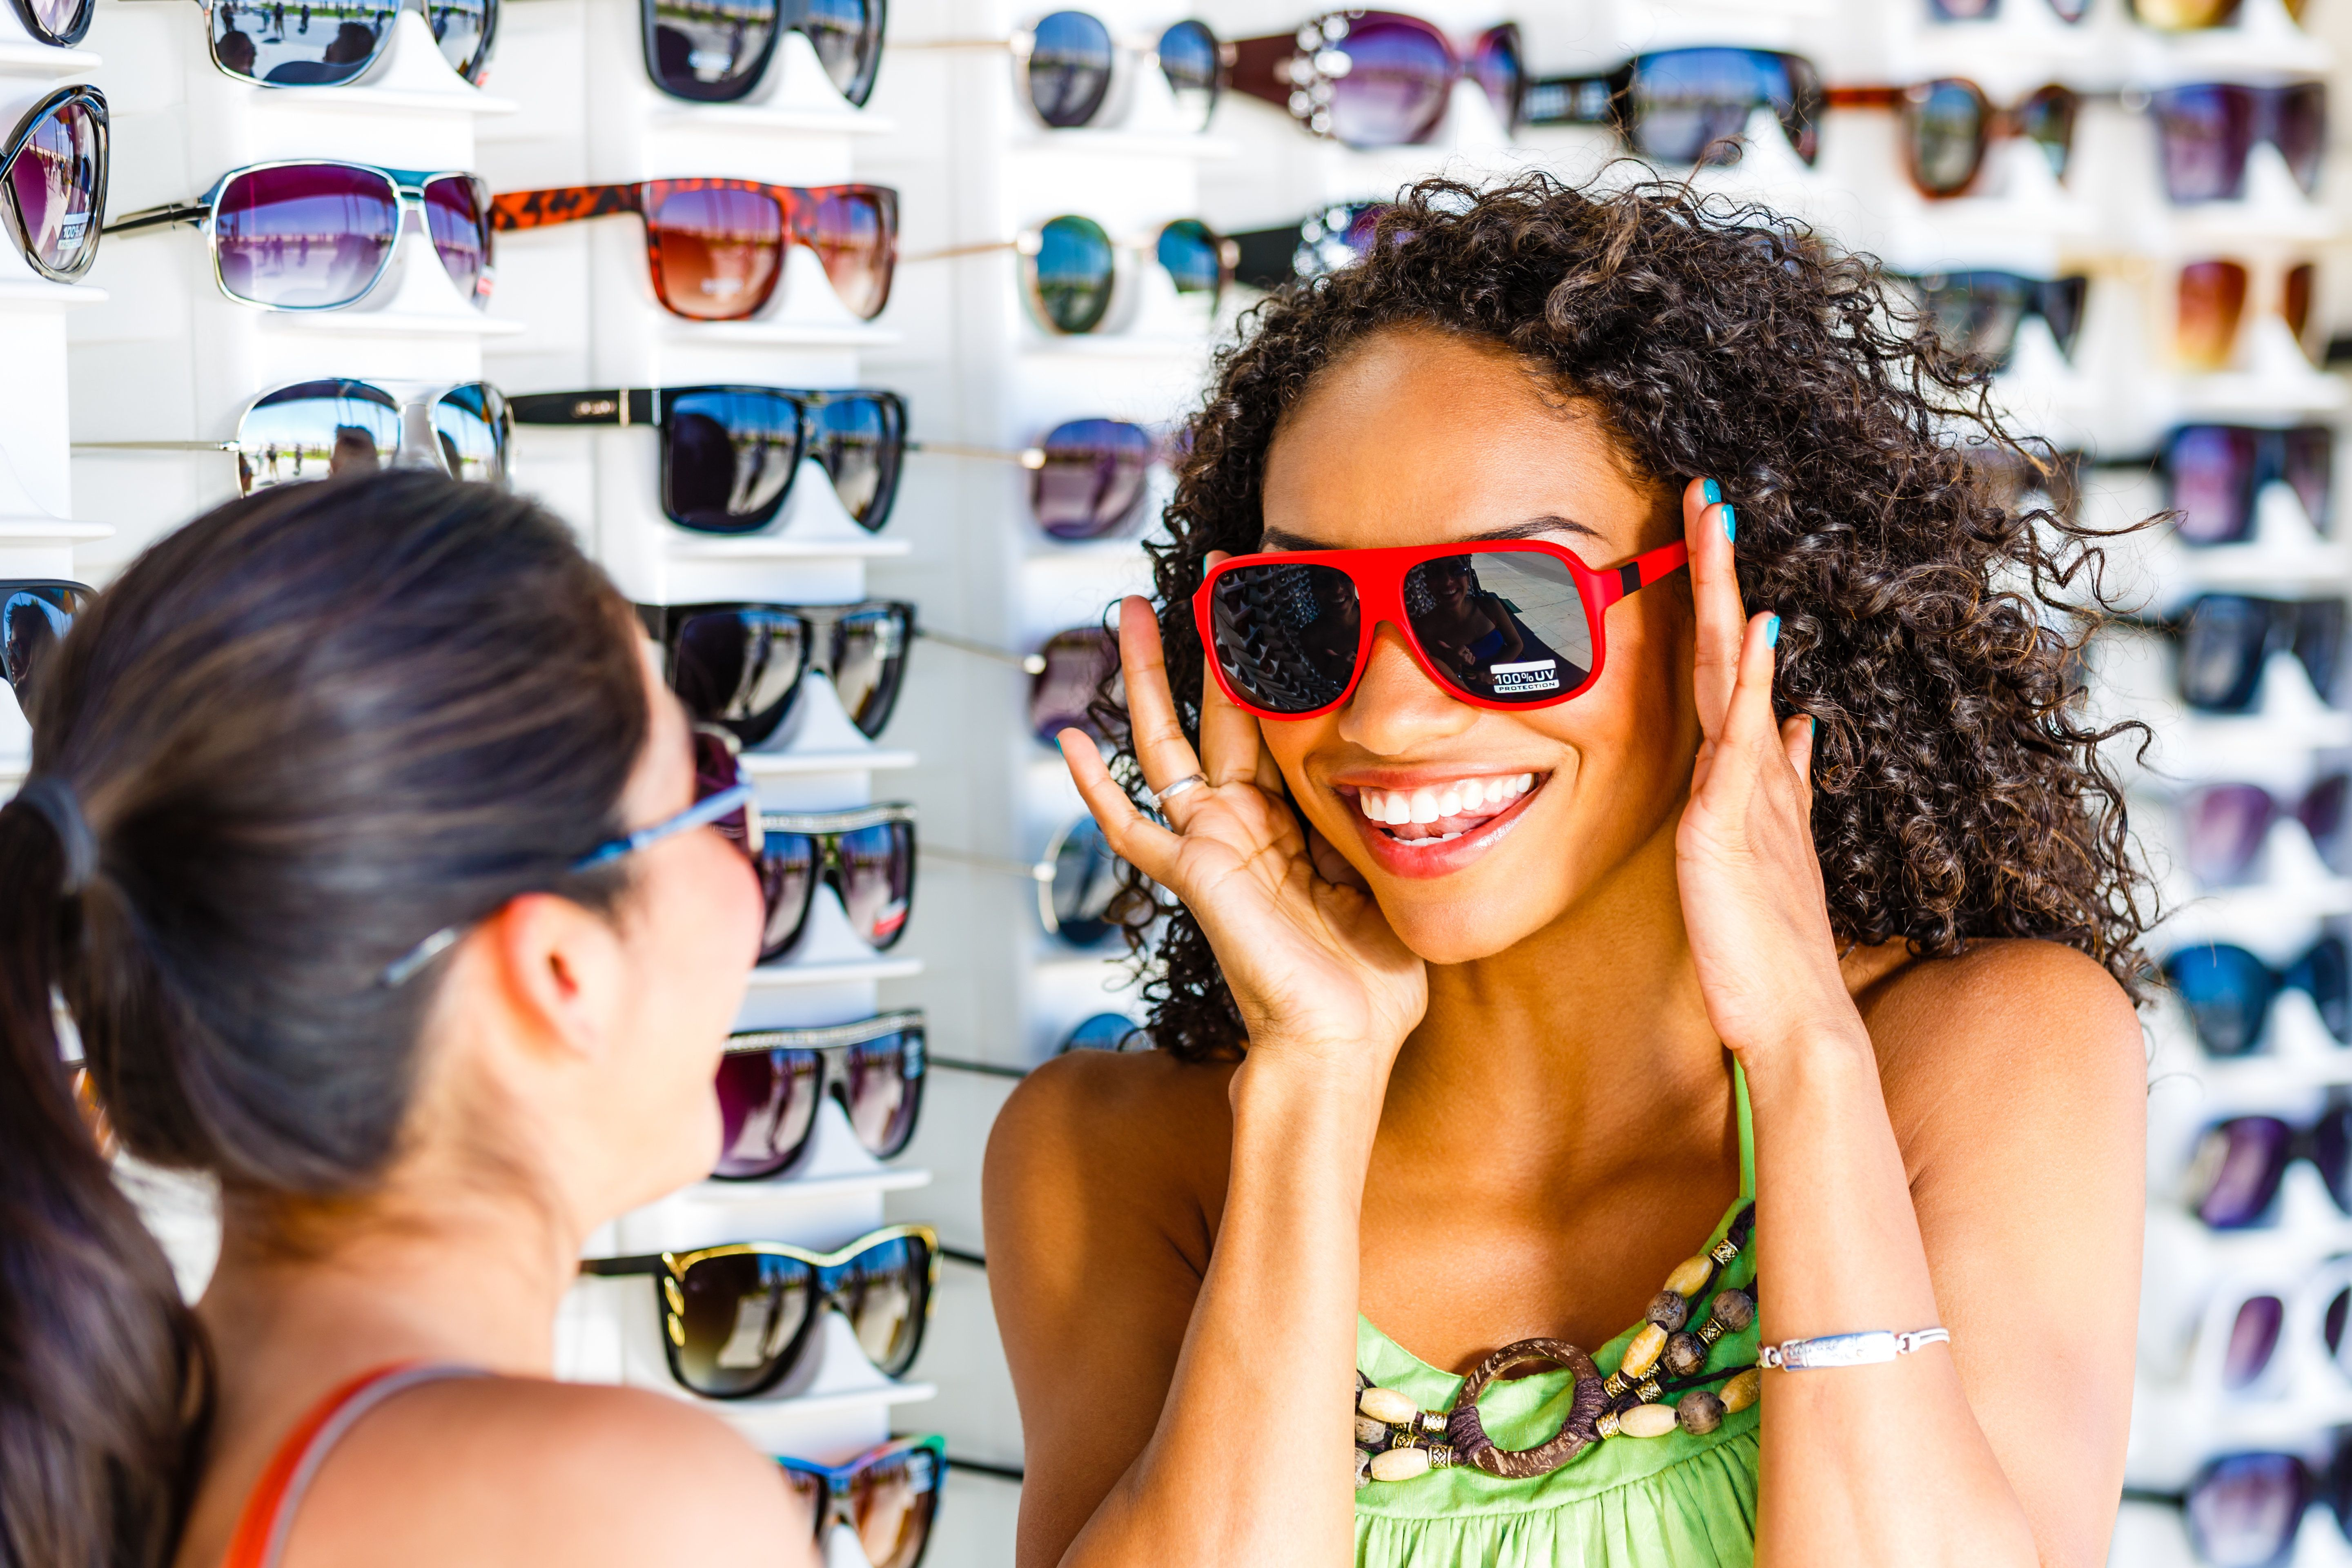 Young women having fun buying sunglasses at Venice beach, LA, USA.